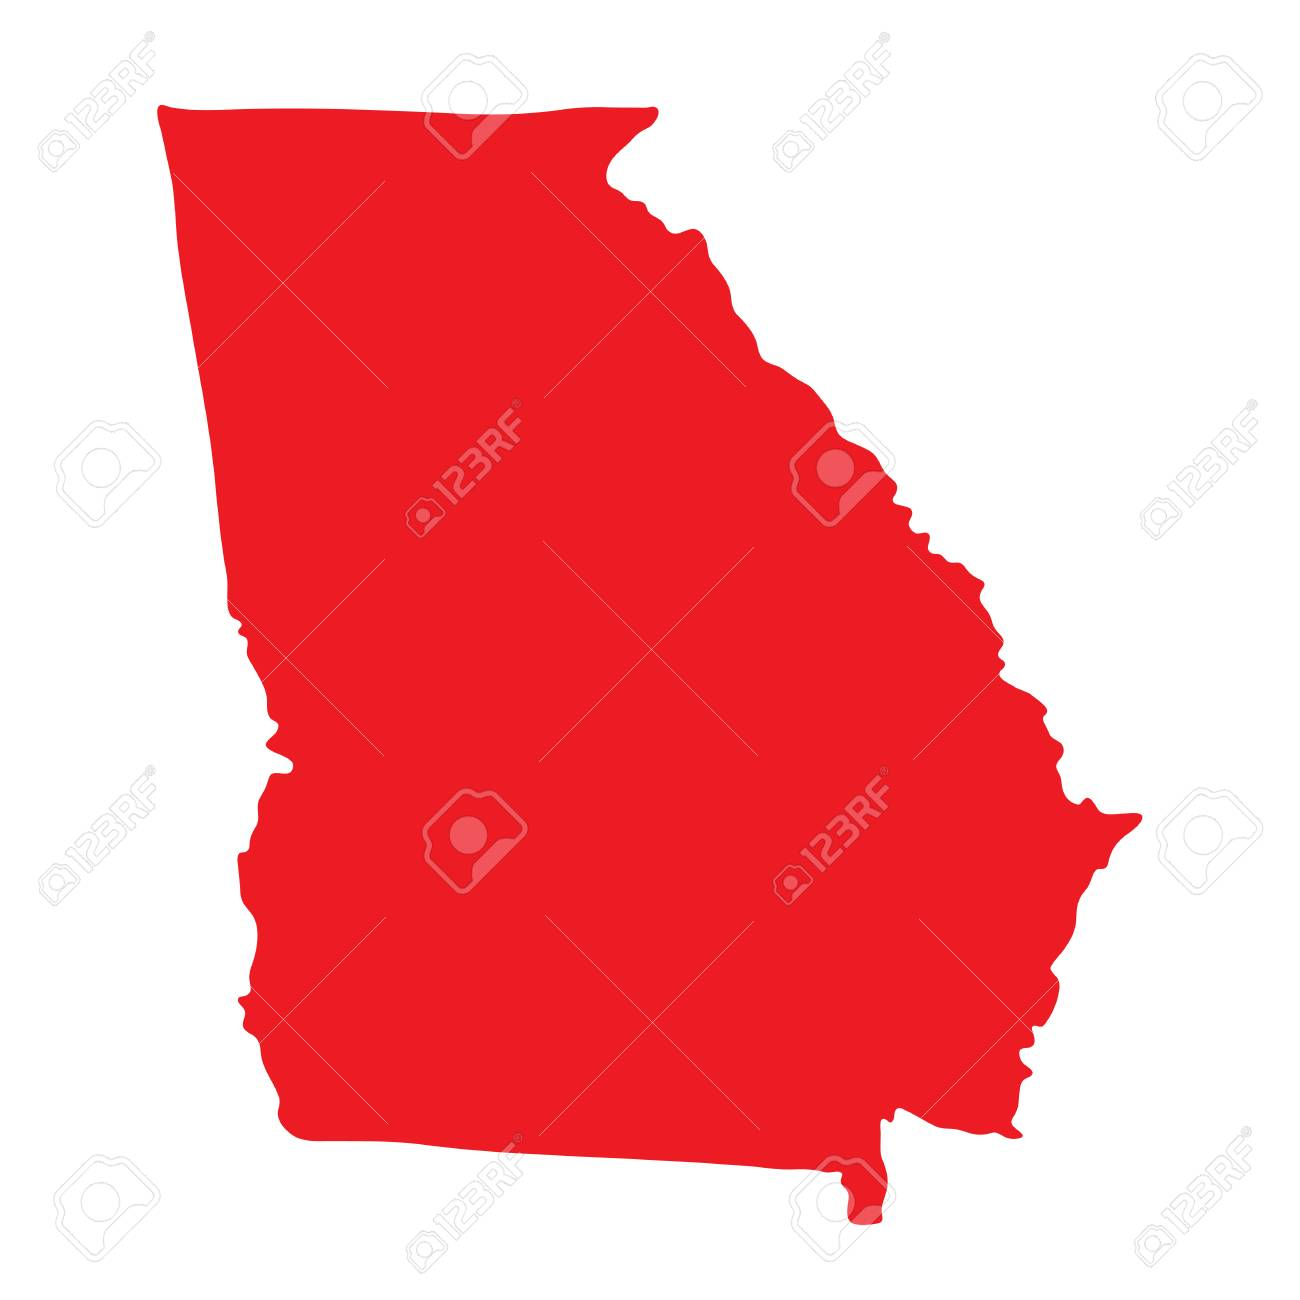 Outline Of Georgia Map.Georgia Vector Map Shape Icon State Of Georgia Map Contour Outline